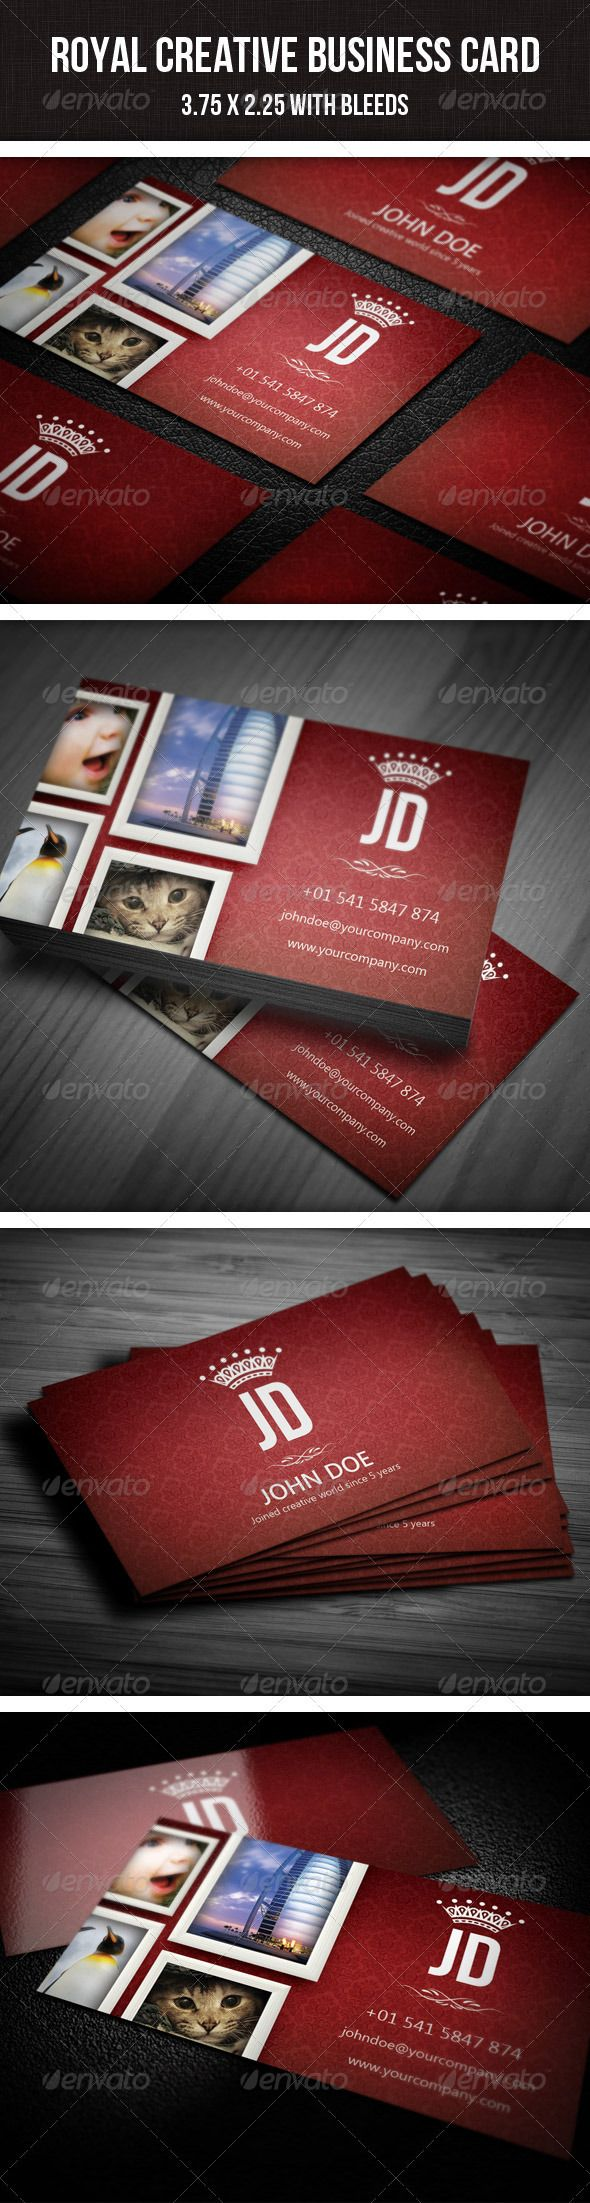 250 best Photography Business Card Design images on Pinterest ...